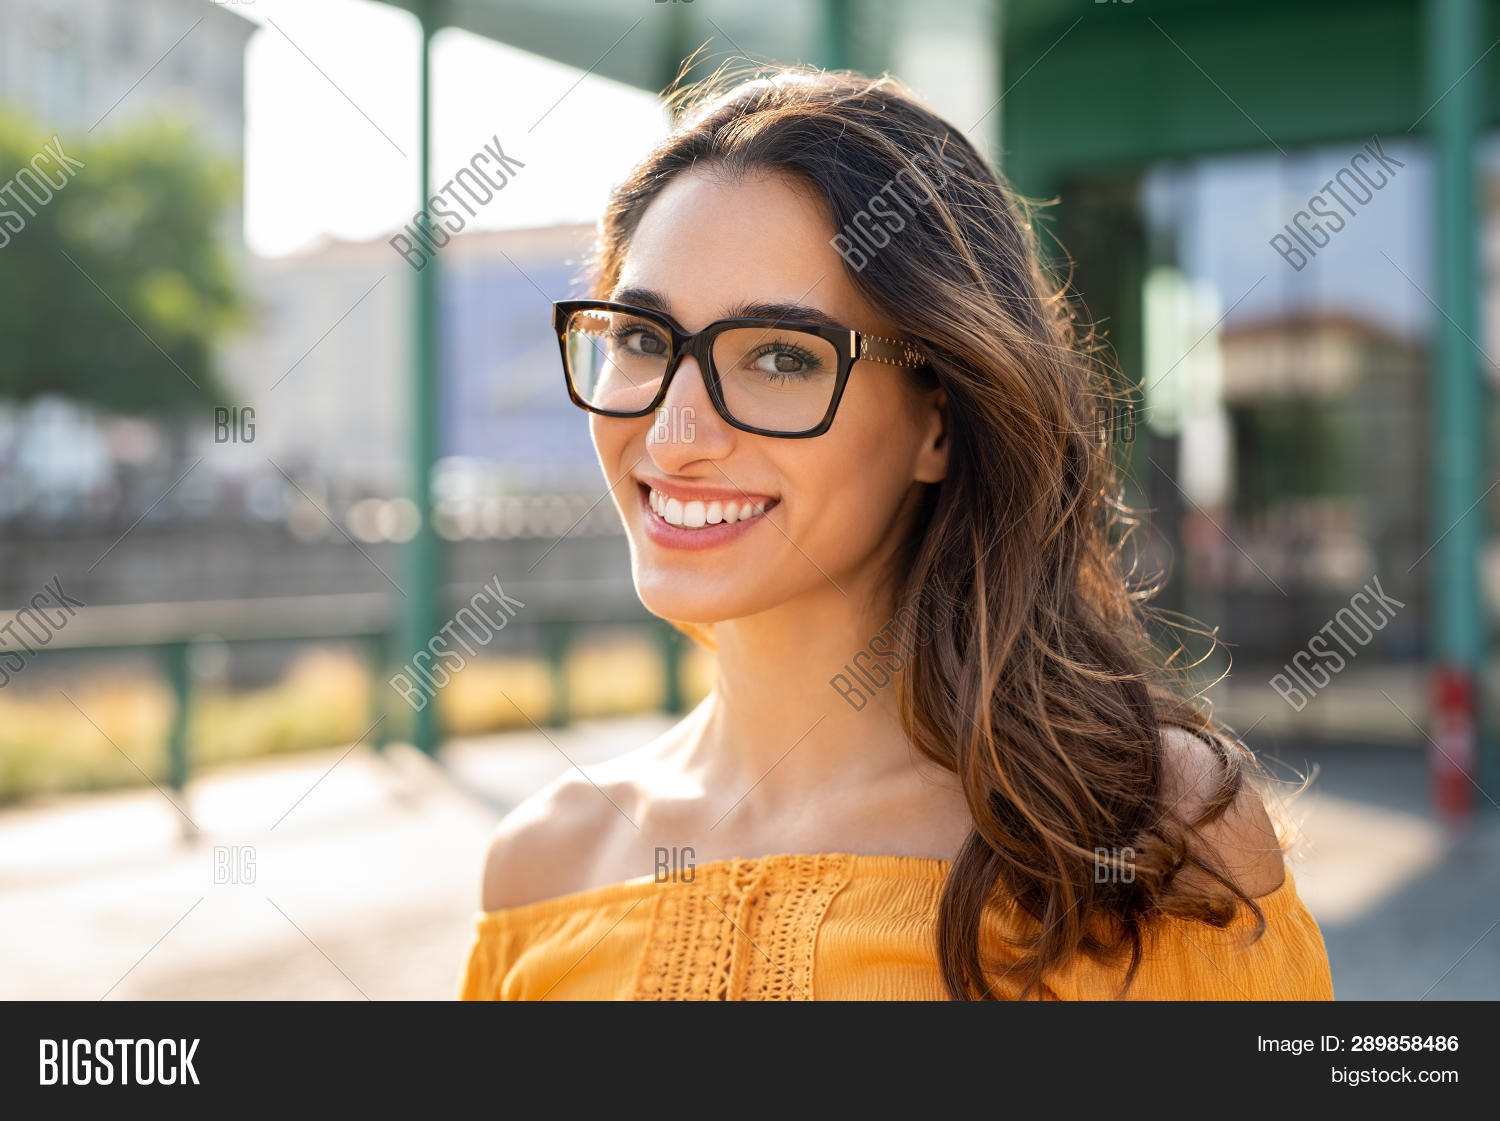 Portrait of carefree young woman smiling and looking at camera with urban background. Cheerful latin